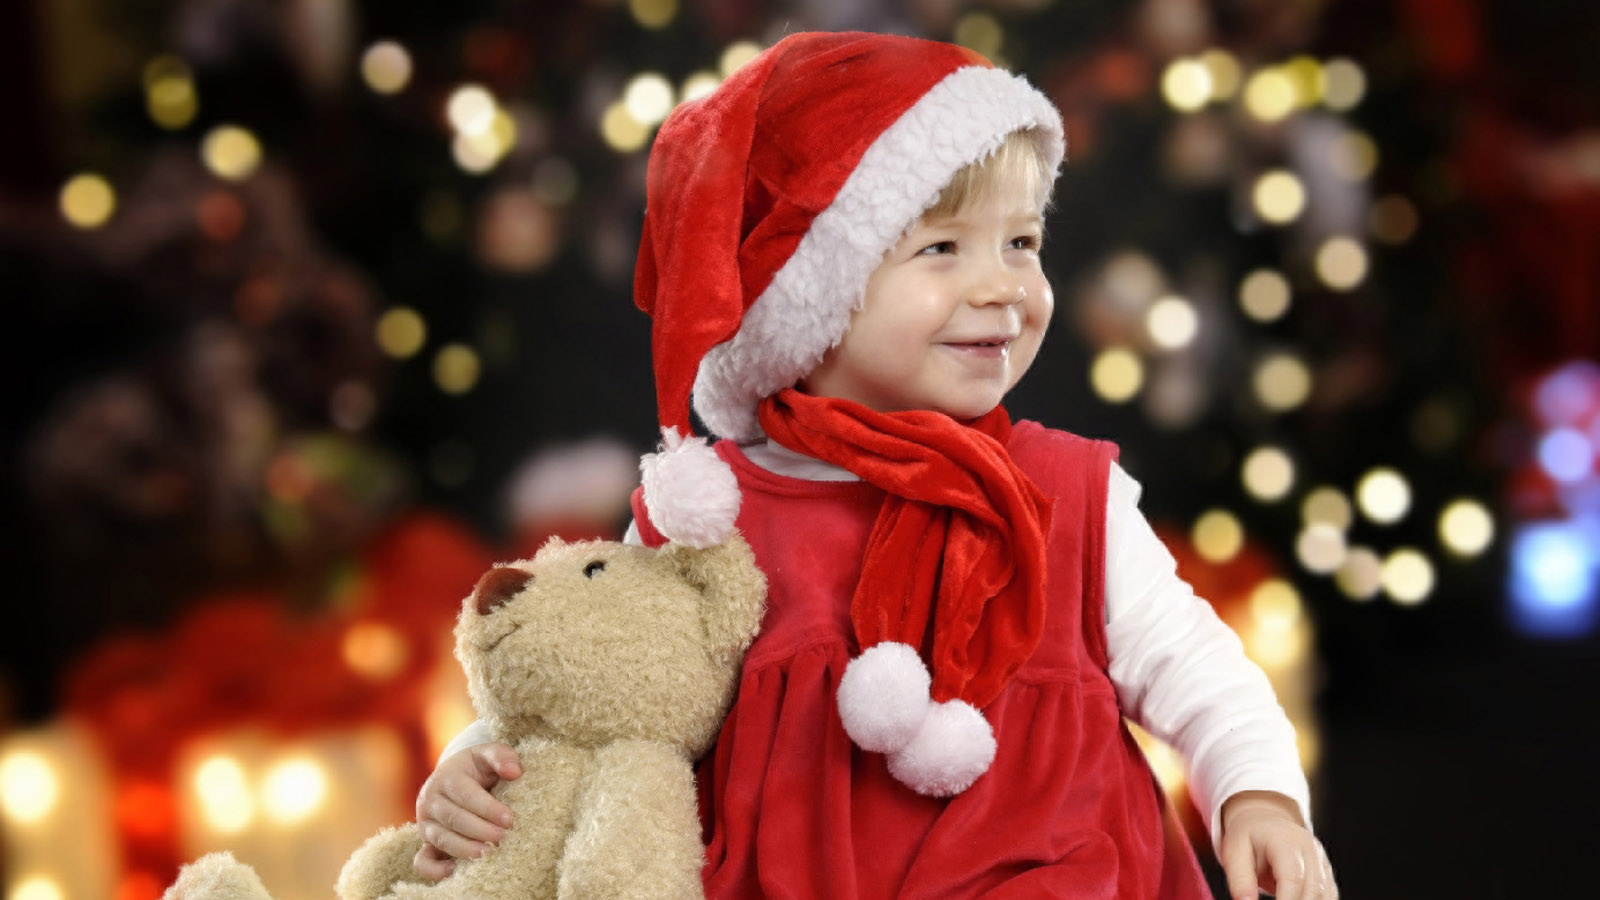 http://www.dreamstime.com/royalty-free-stock-image-little-girl-c